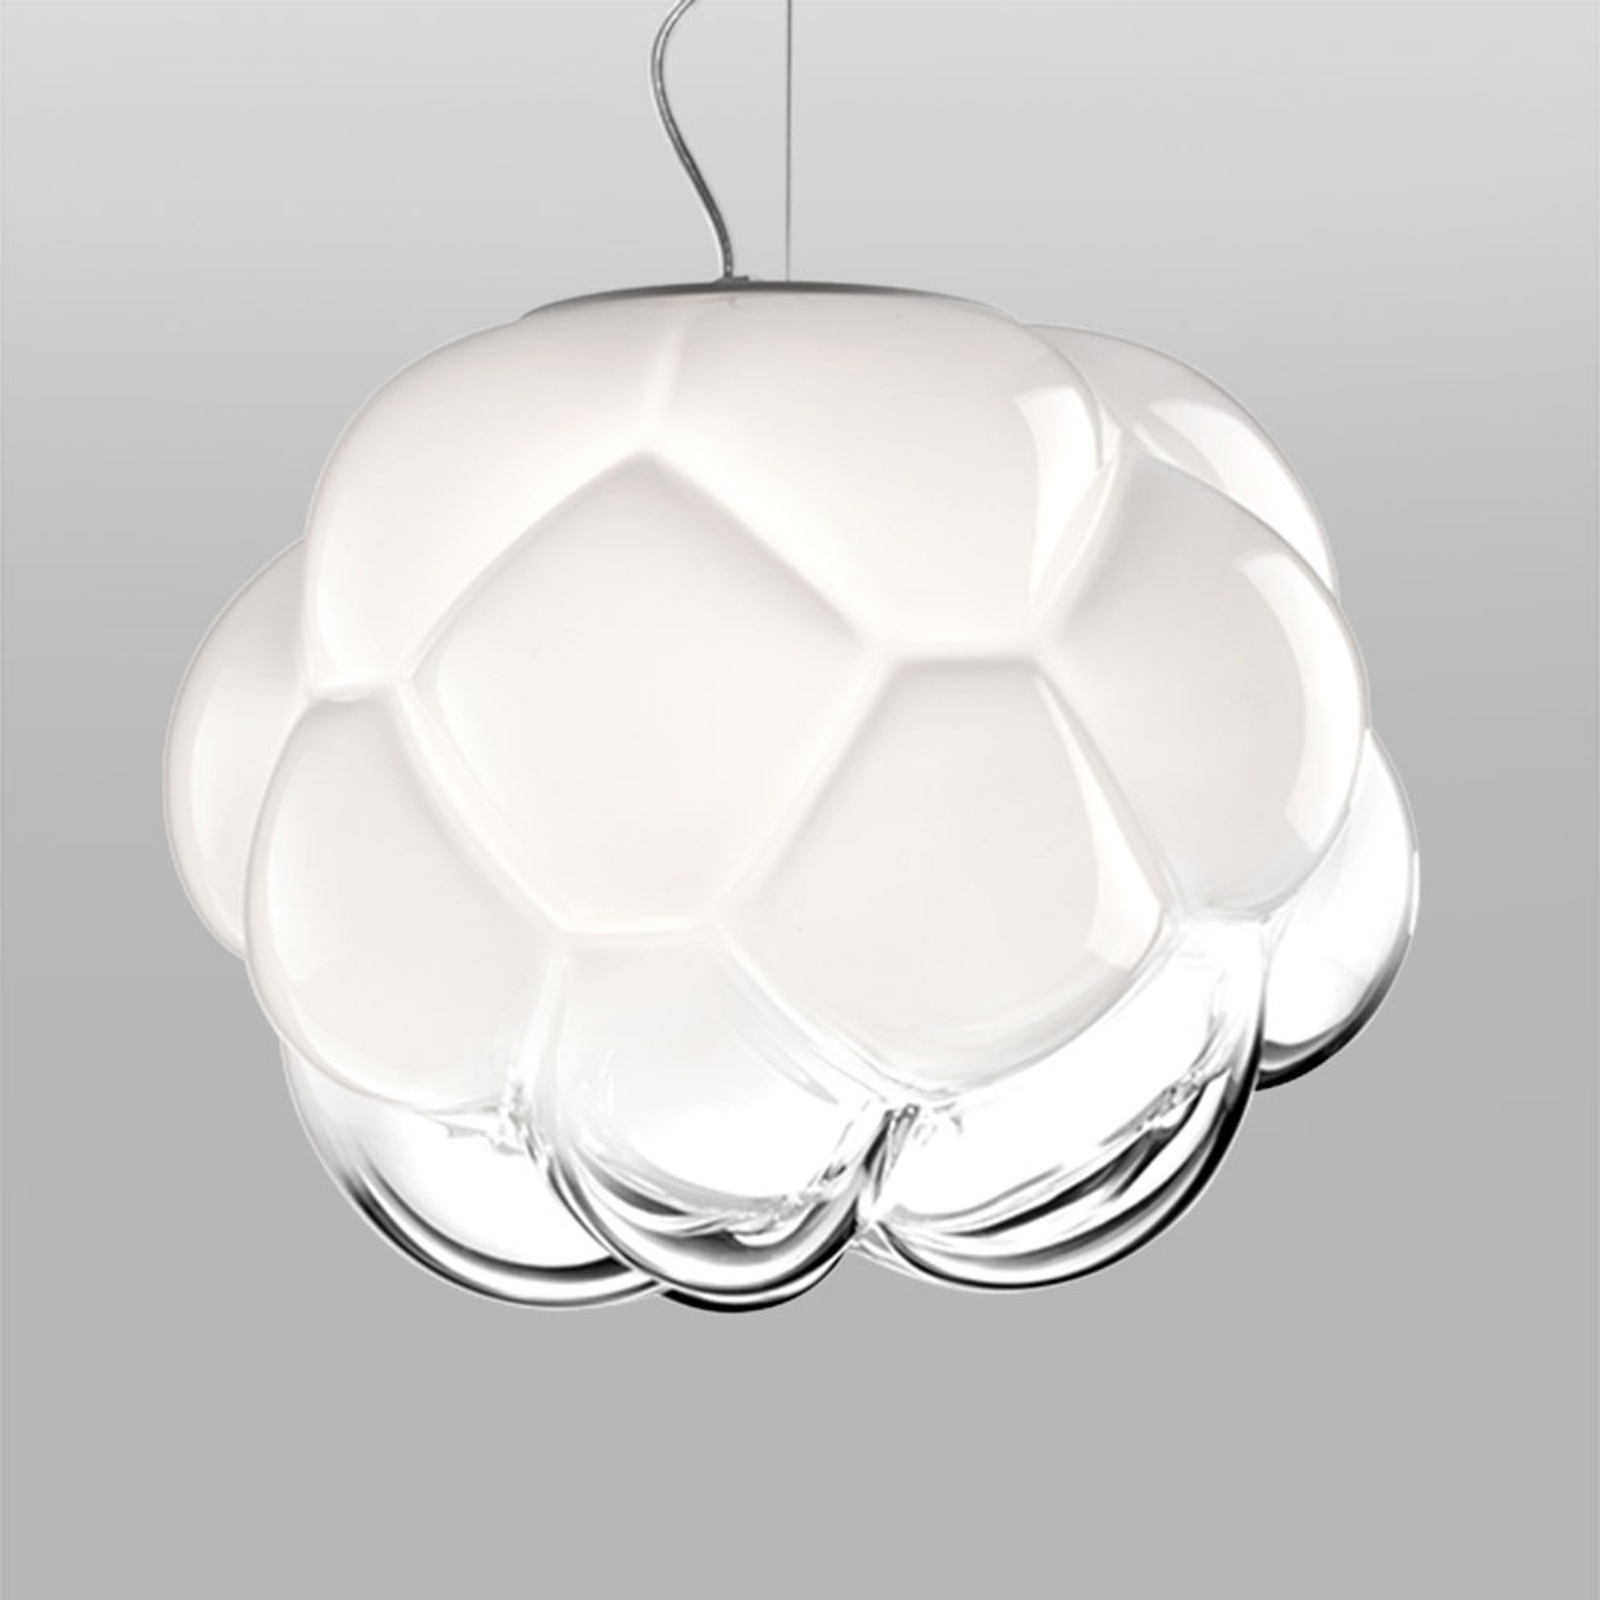 Suspension LED en forme de nuage Cloudy 40 cm